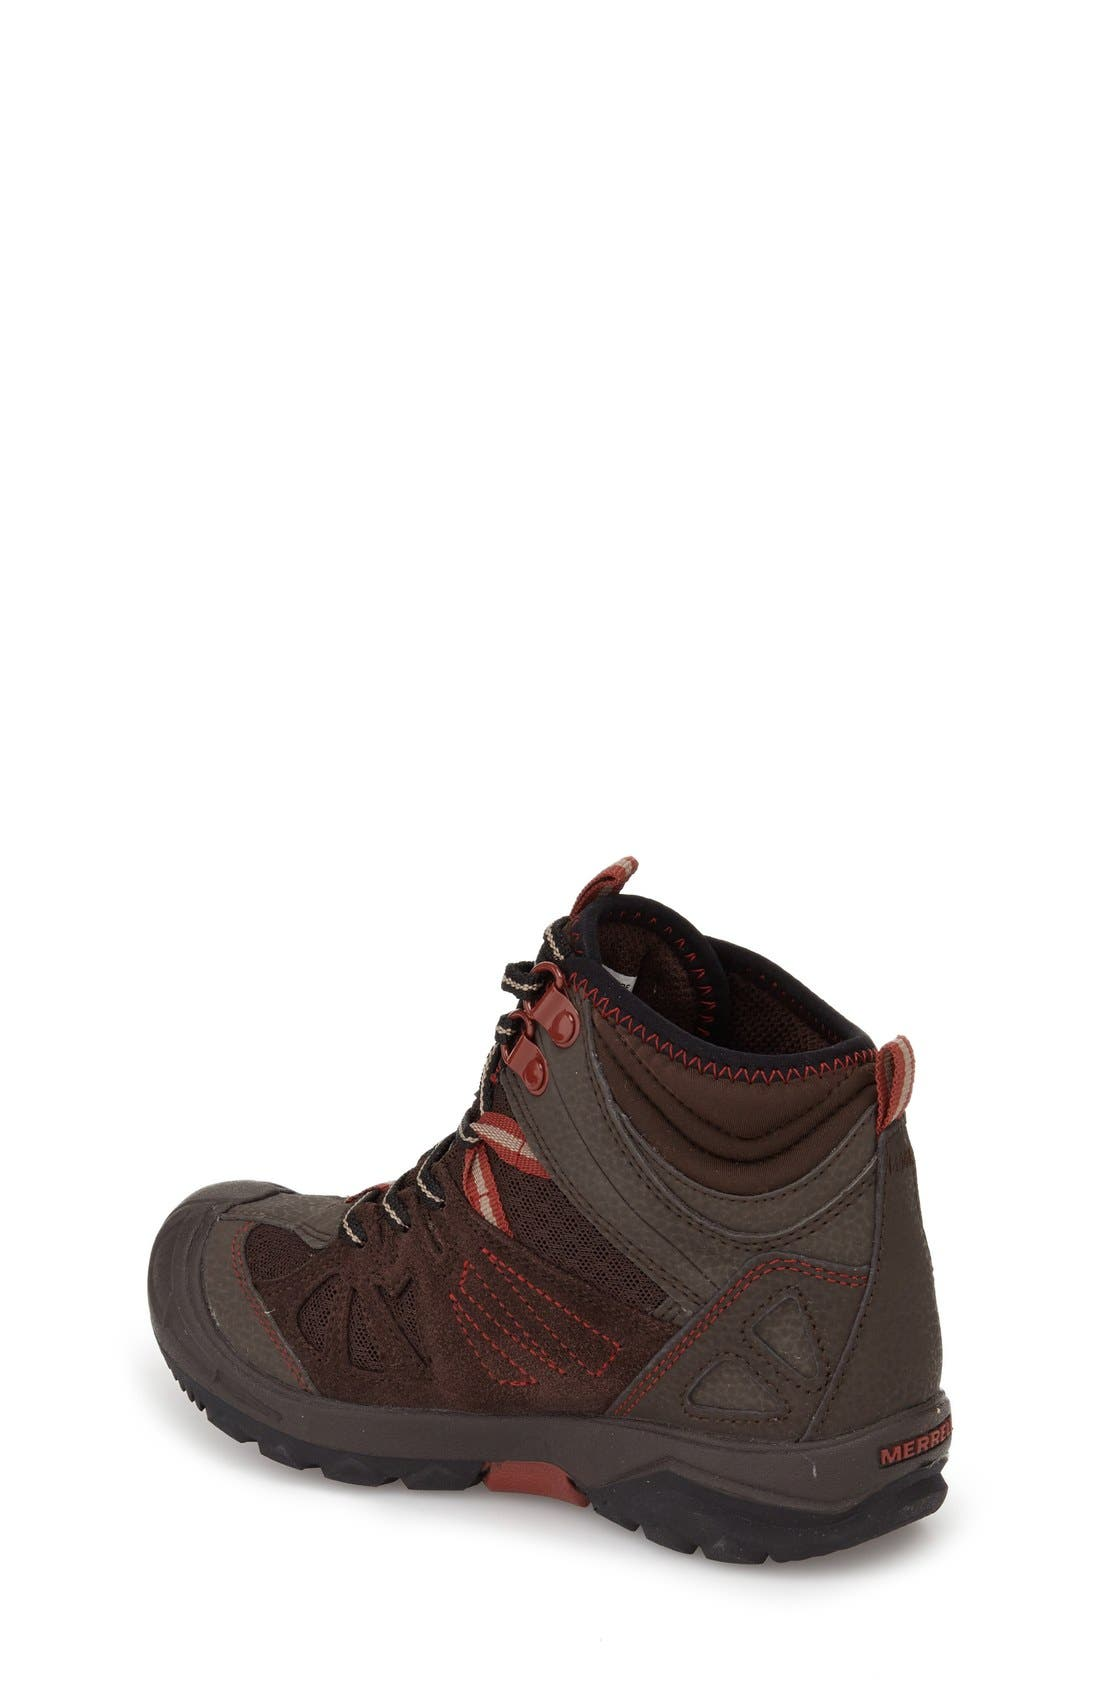 'Capra' Mid Waterproof Hiking Shoe,                             Alternate thumbnail 5, color,